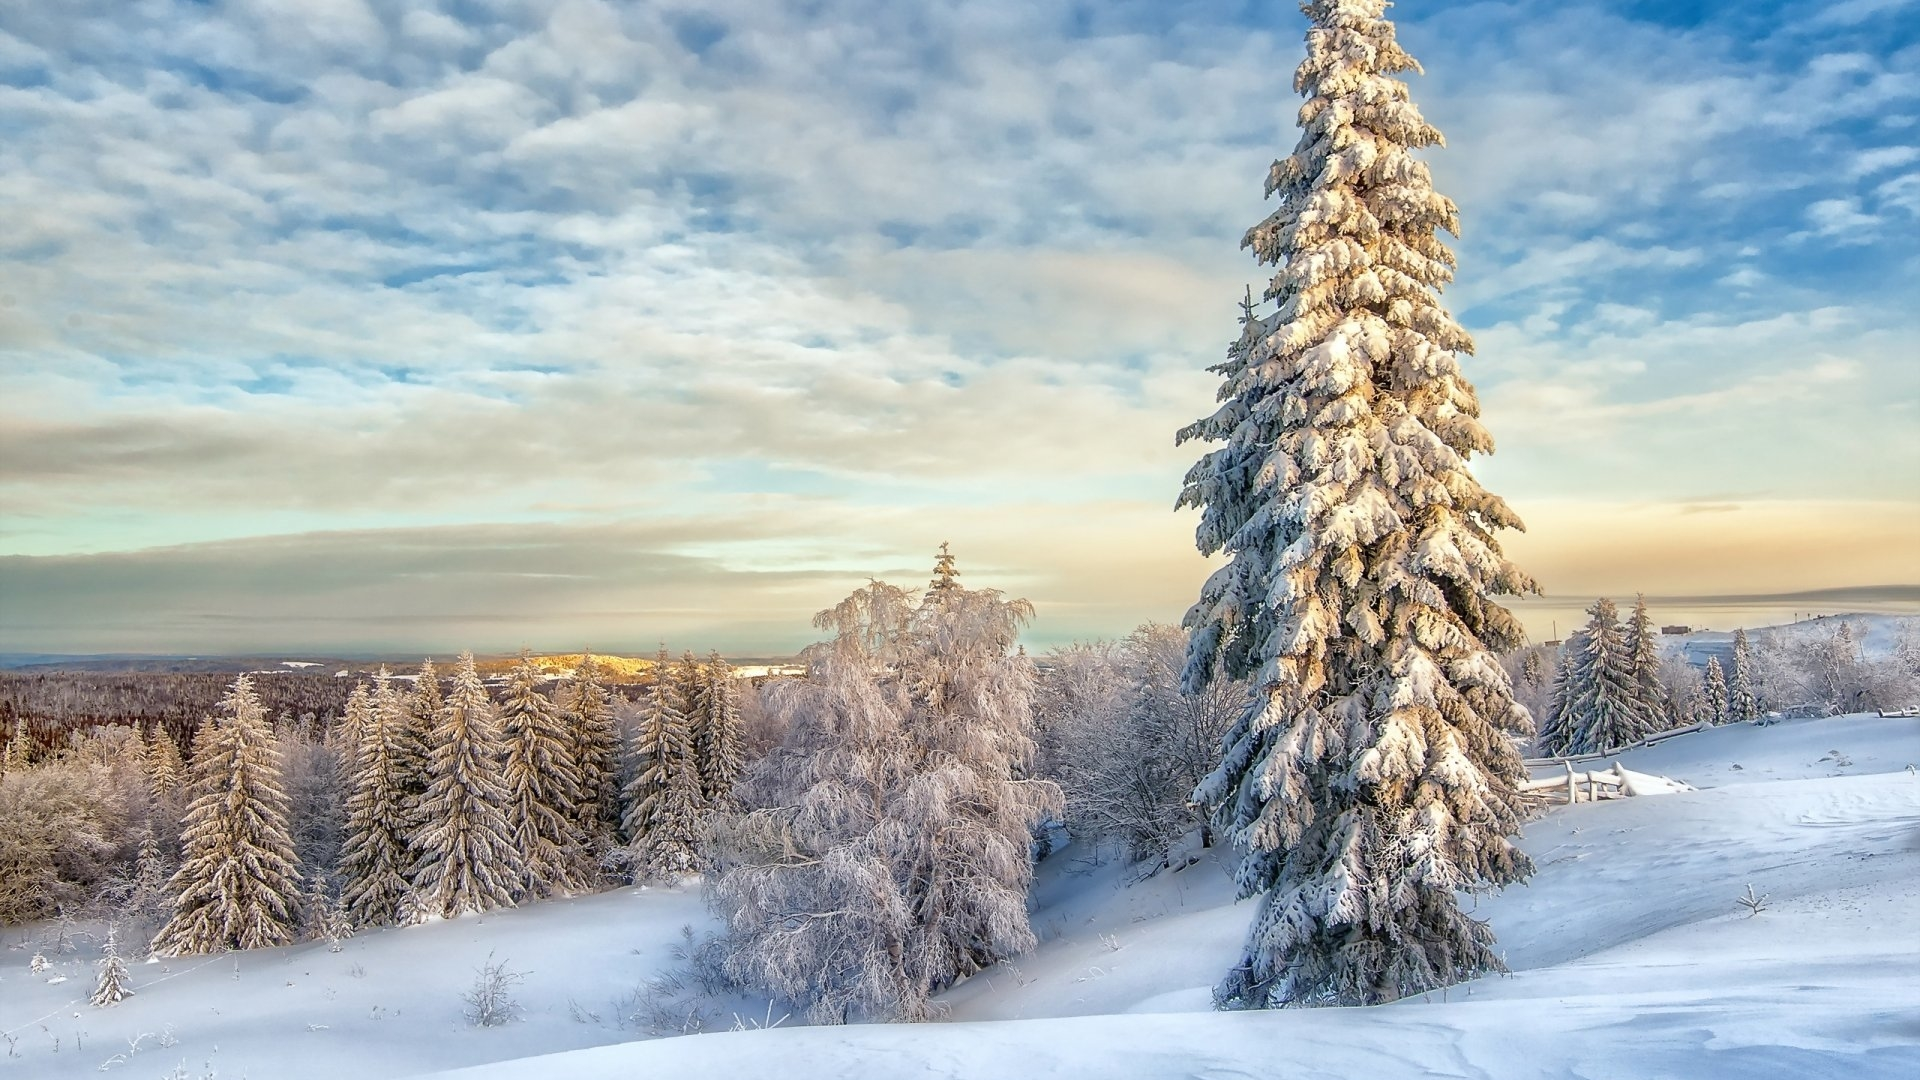 1920x1080 Winter Landscape With Snow Covered Trees 1080p Laptop Full Hd Wallpaper Hd Nature 4k Wallpapers Images Photos And Background